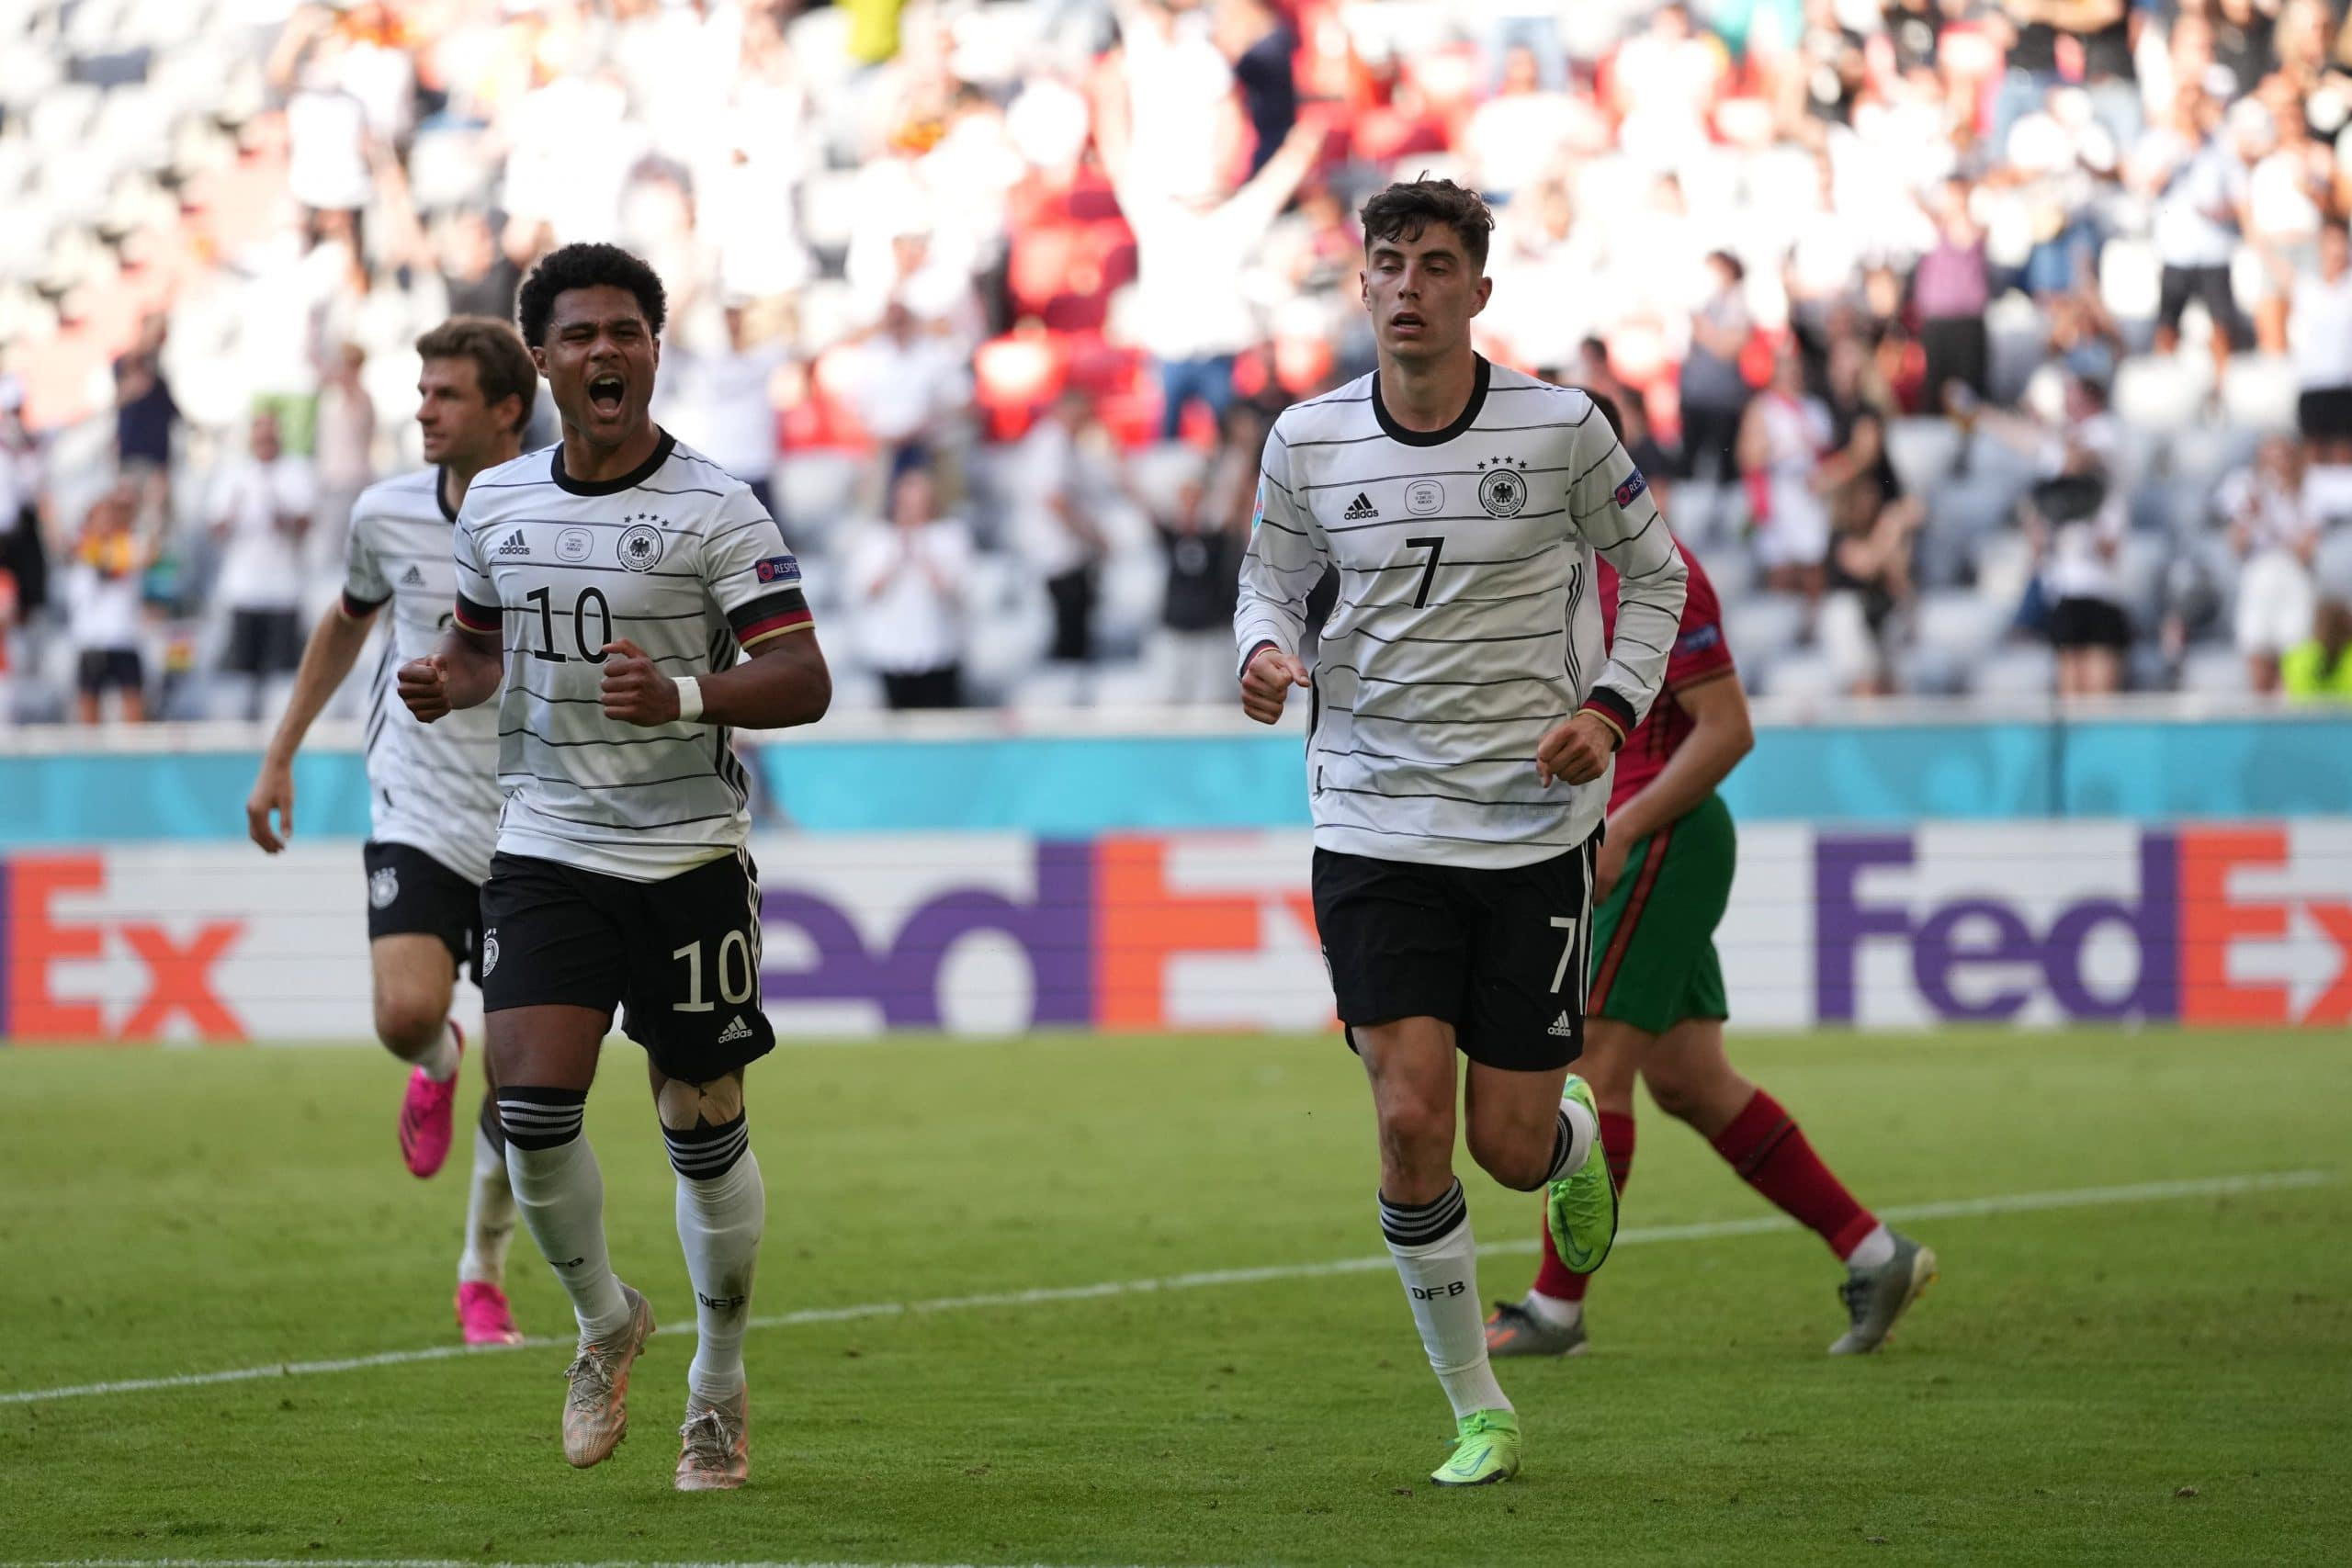 Euro 2020: Germany Edge Portugal In Six-Goal Thriller To Get Campaign Back On Track